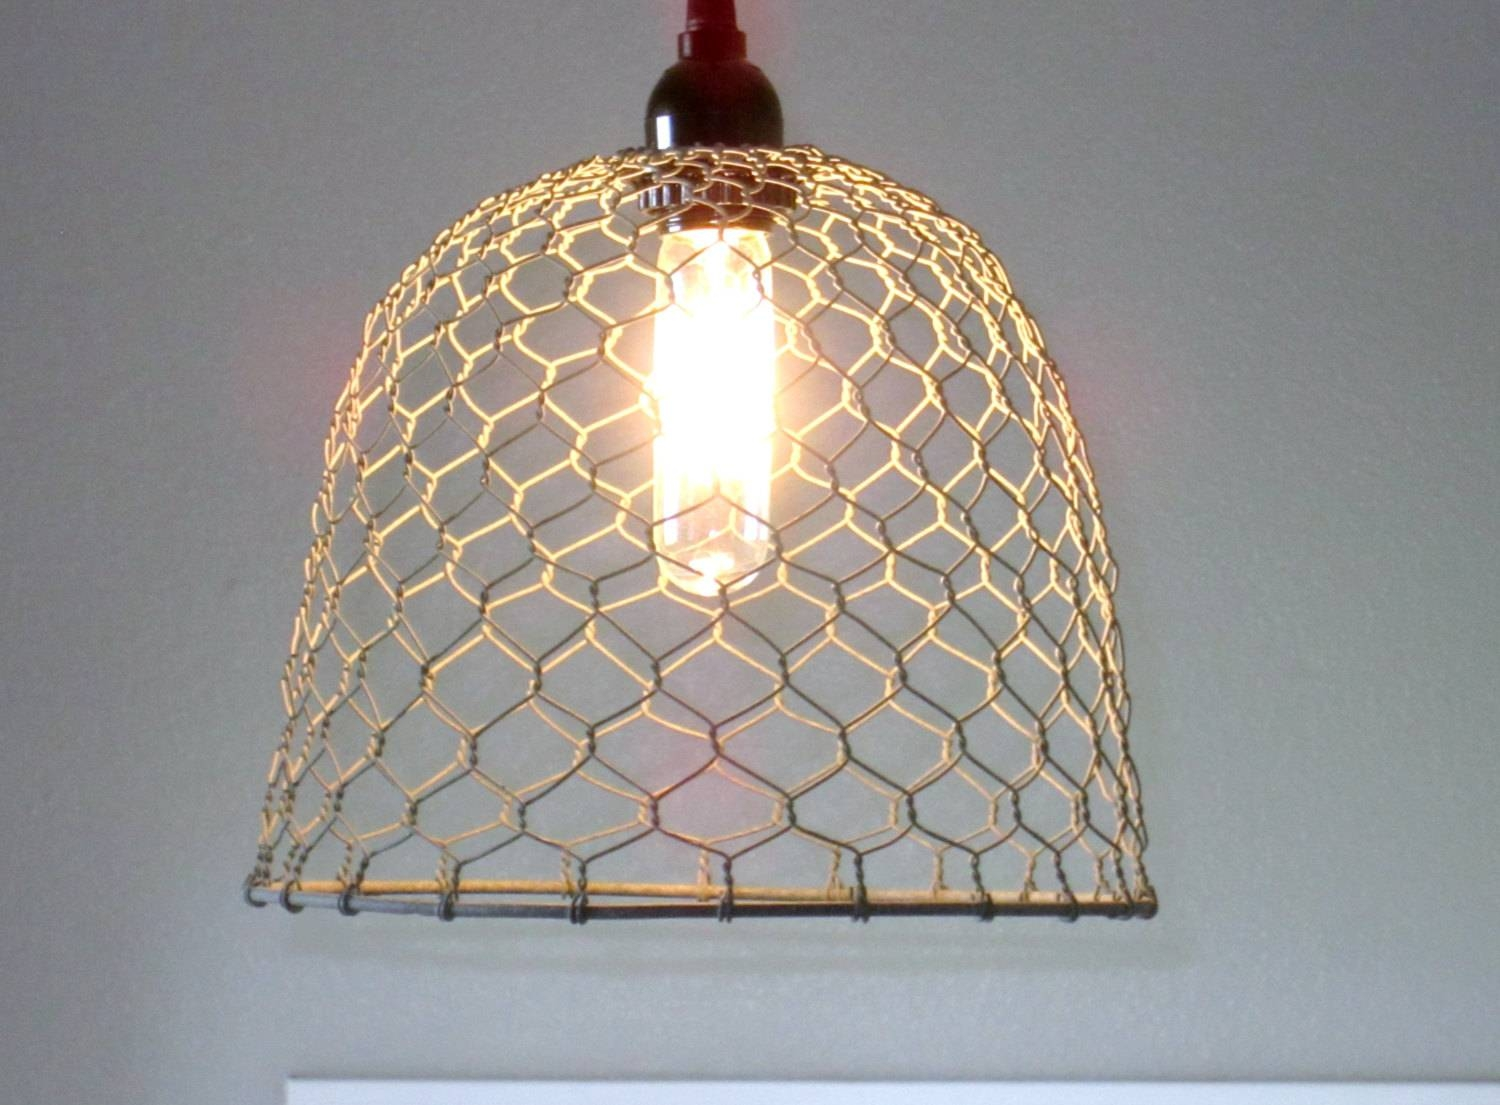 Rustic Pendant Lighting Chicken Wire Farmhouse Pendant With Regard To Chicken Wire Pendant Lights (View 13 of 15)